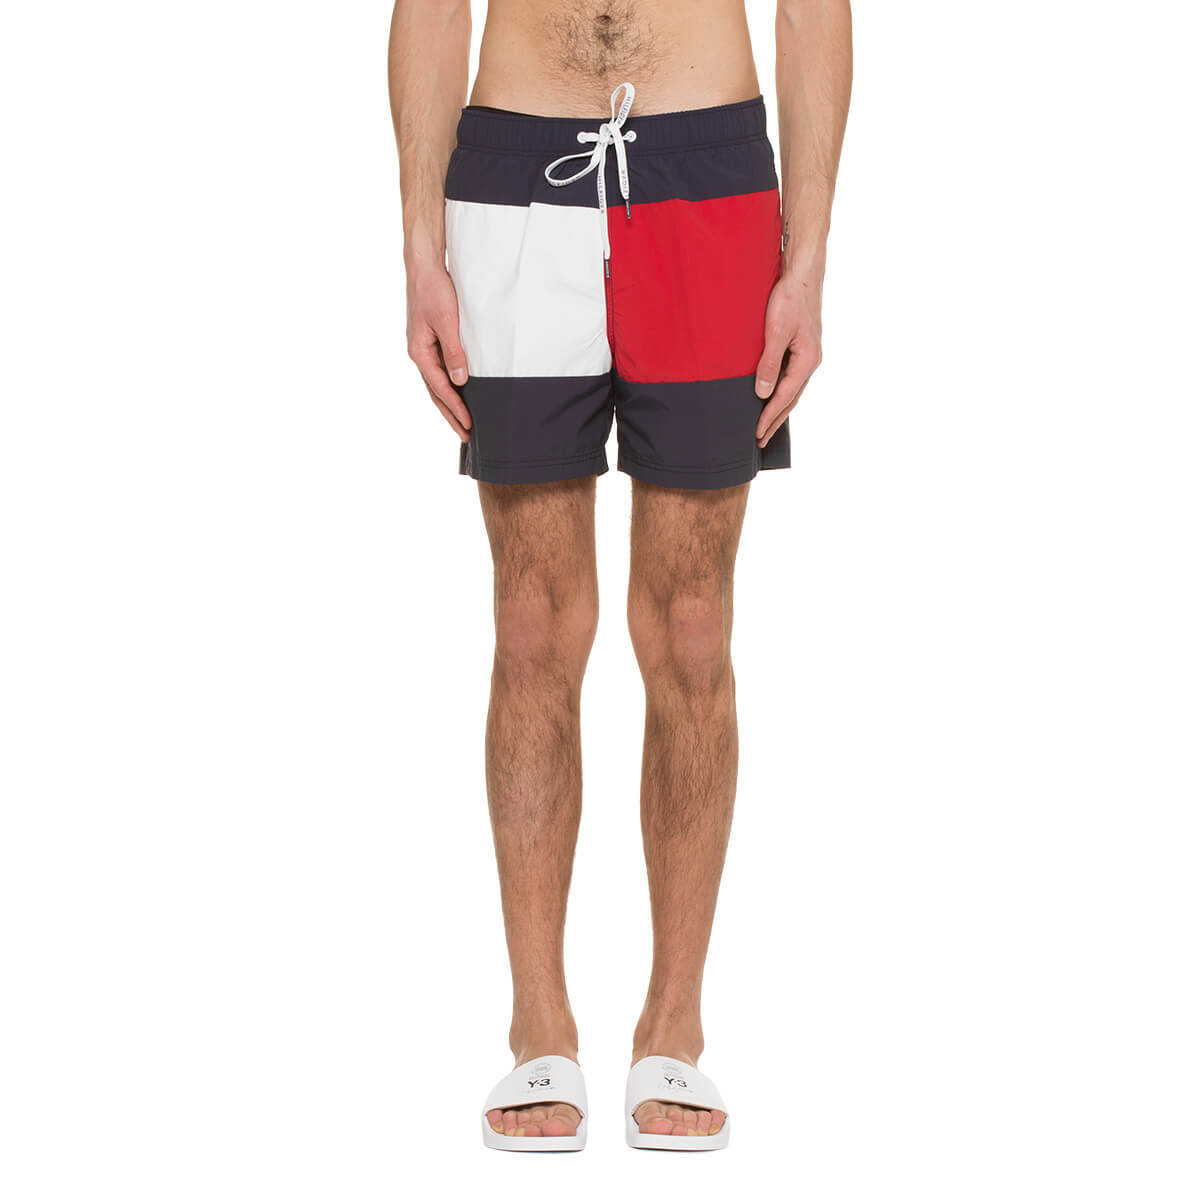 a7e7138003 TOMMY JEANS Swimshorts - Blue/Red/White | Garmentory